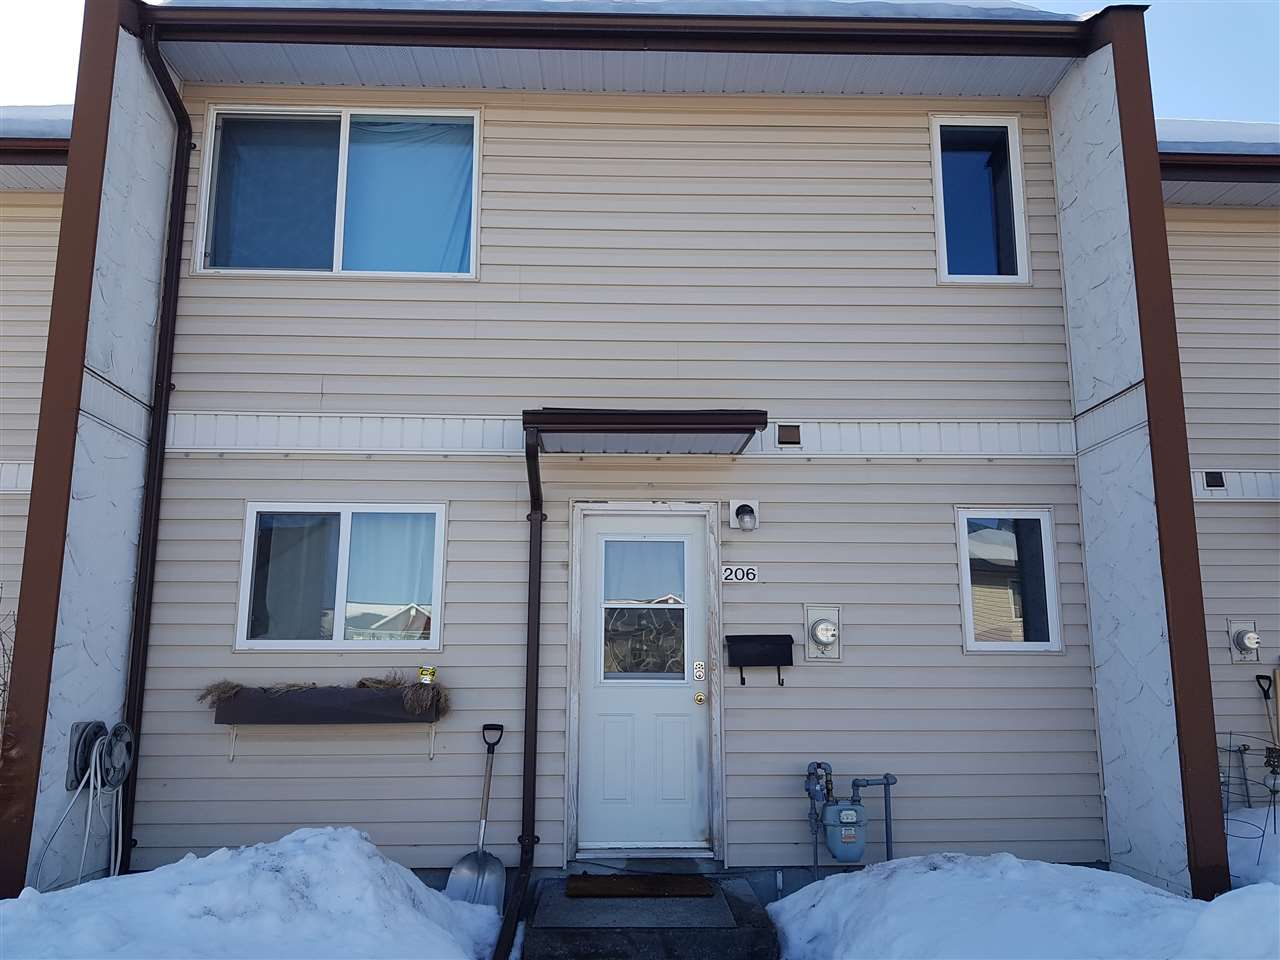 """Main Photo: 206 4344 JACKPINE Avenue in Prince George: Foothills Townhouse for sale in """"FOOTHILLS"""" (PG City West (Zone 71))  : MLS®# R2353009"""